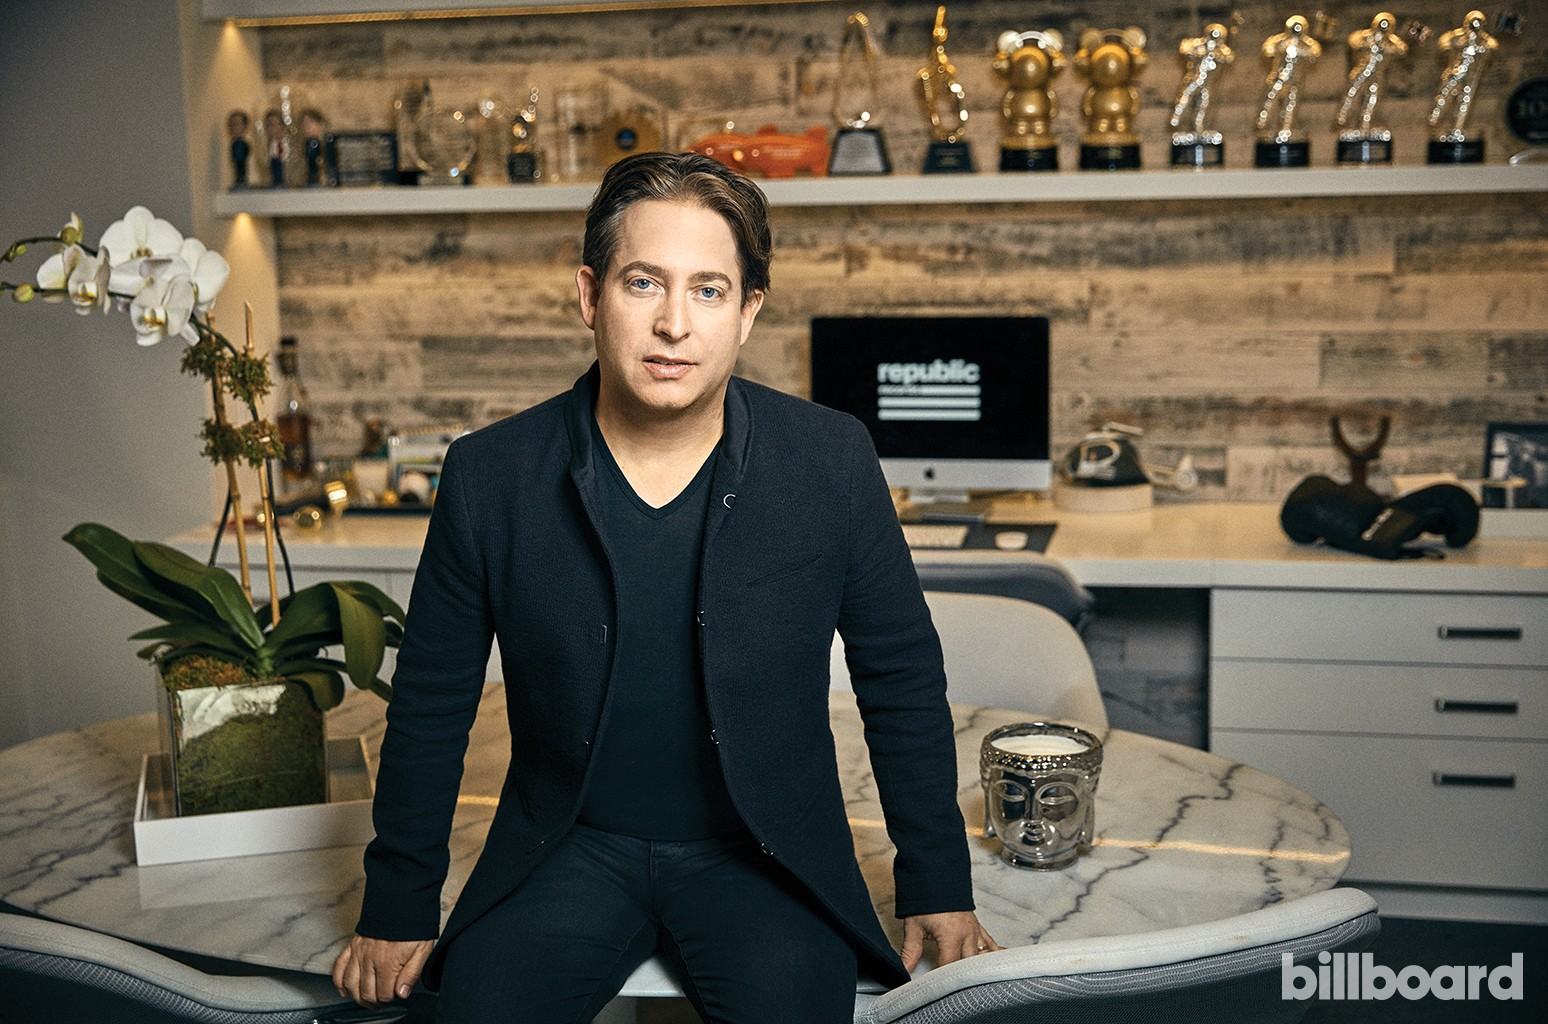 Charlie Walk photographed on Jan. 17 at Republic Records in New York.